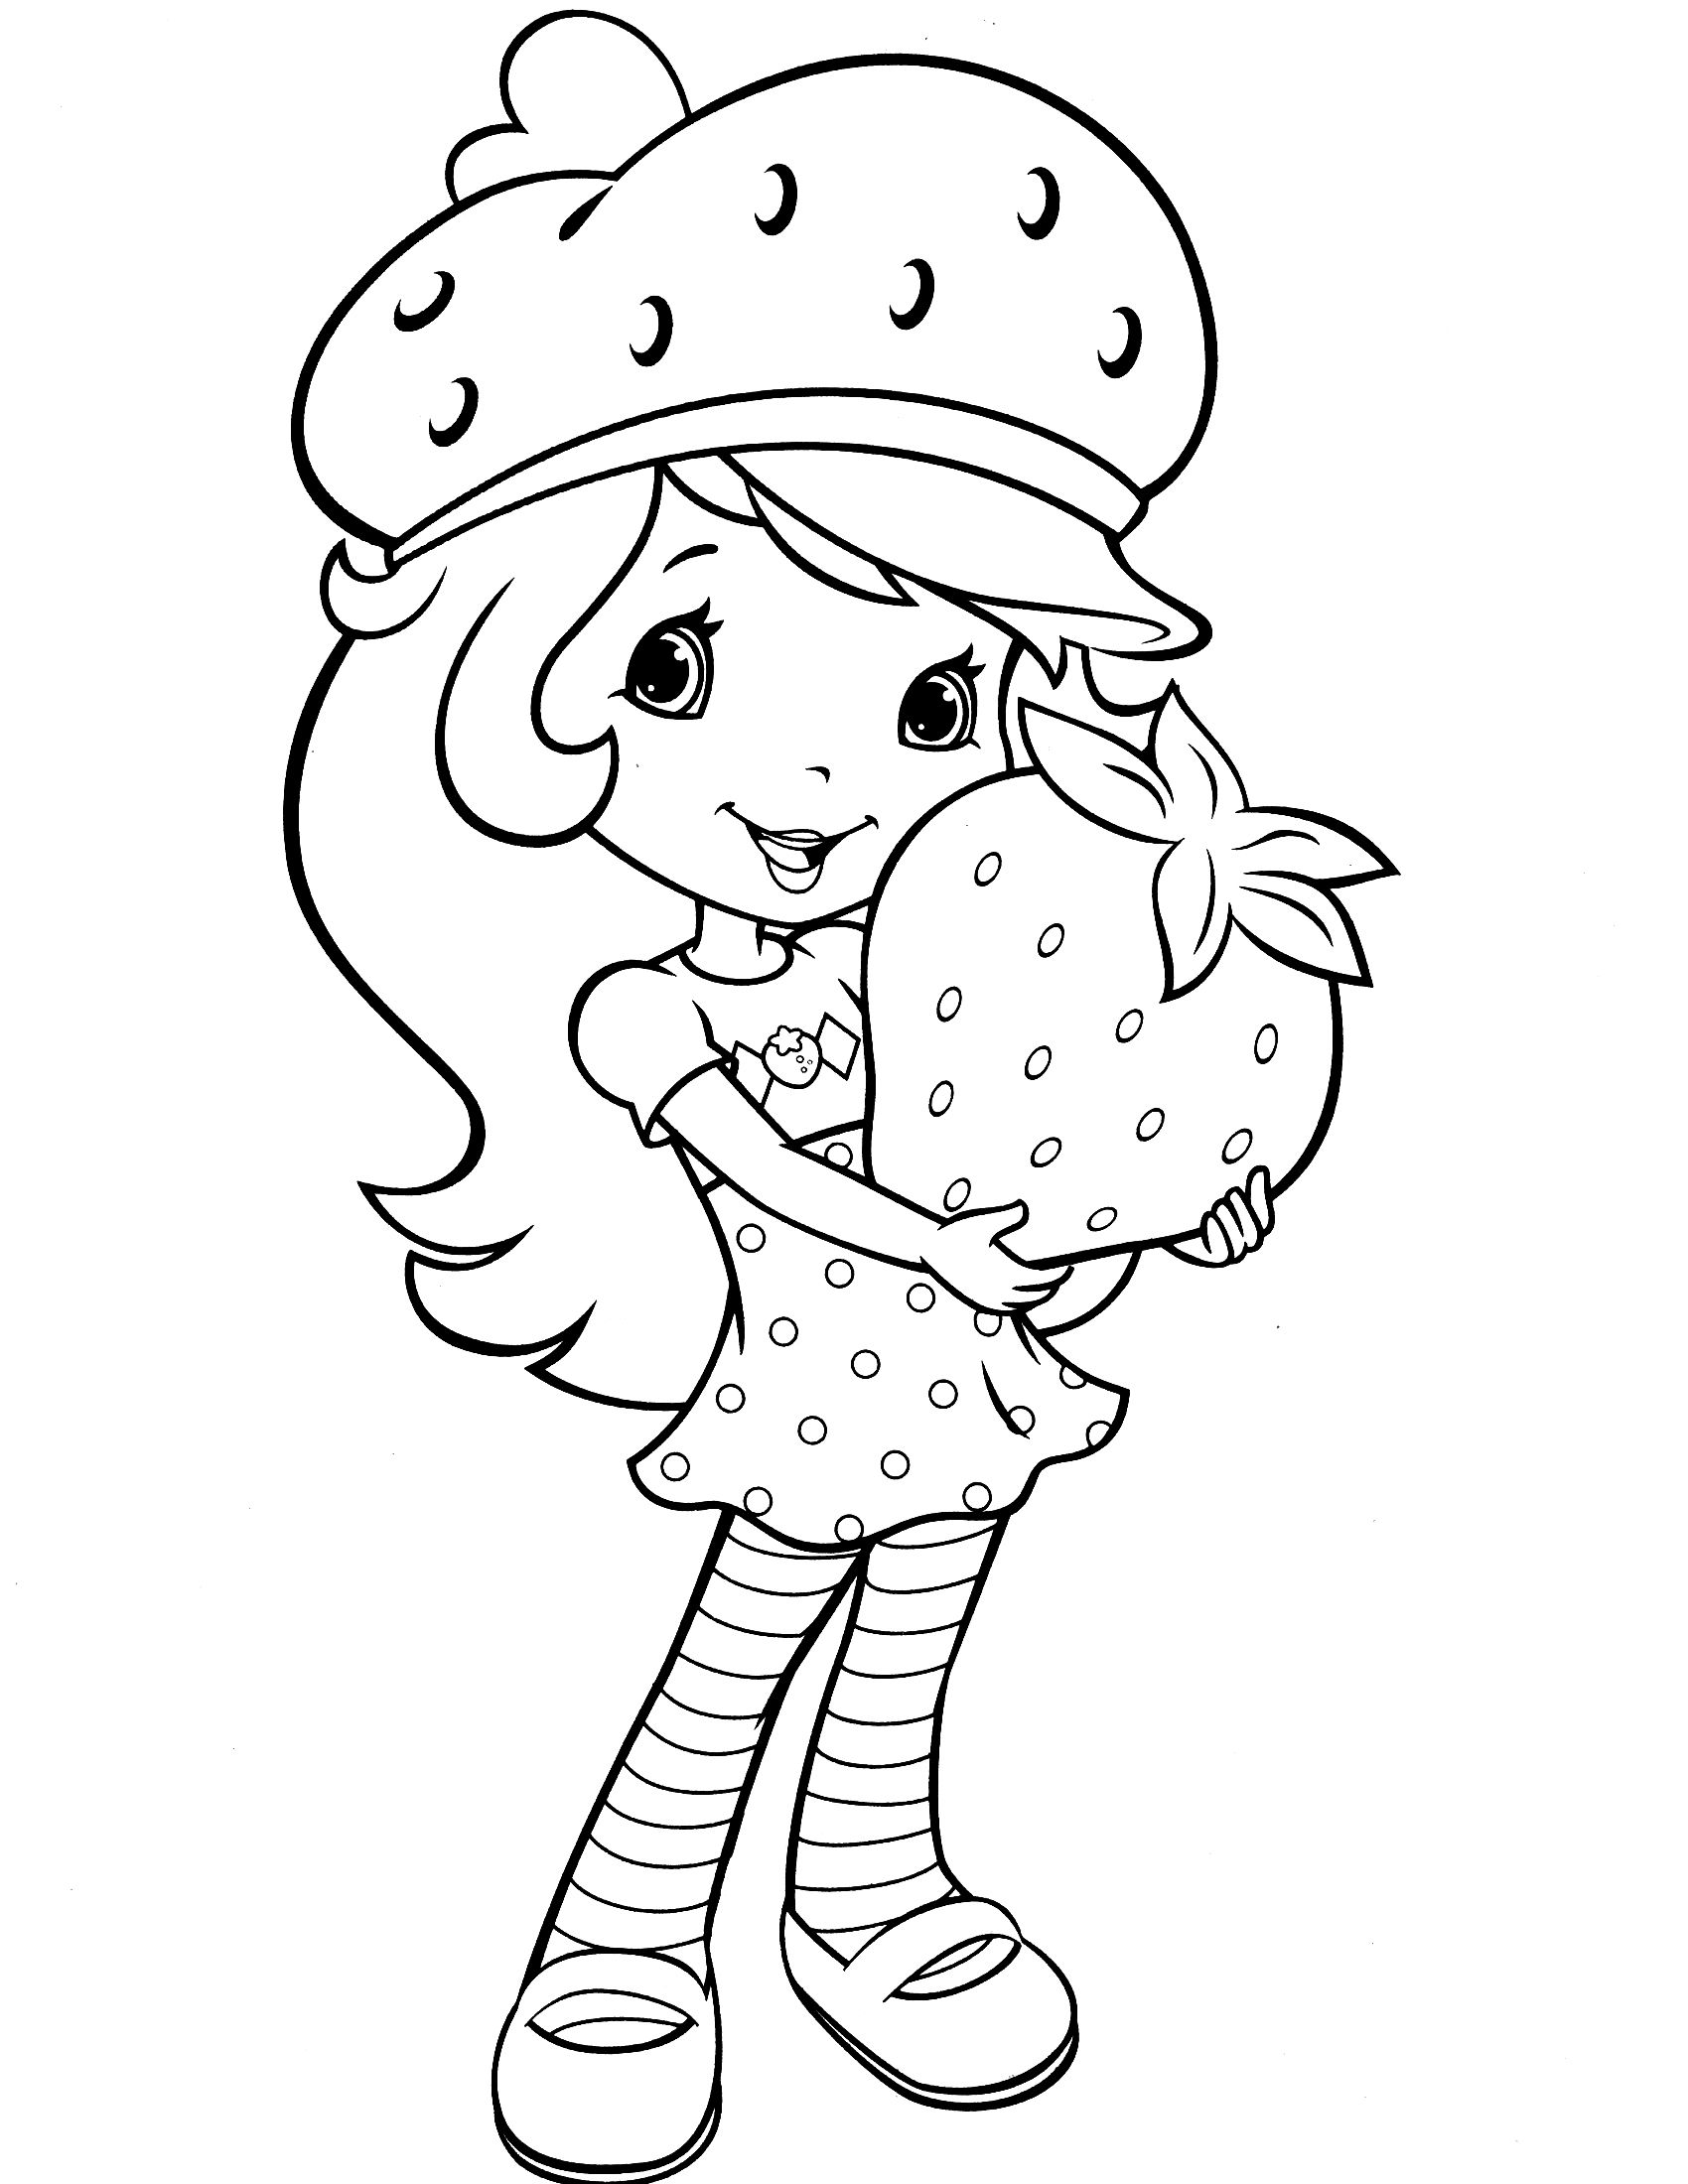 emily the tank engine coloring pages green engine emily the tank engine train thomas the tank tank emily the engine pages coloring